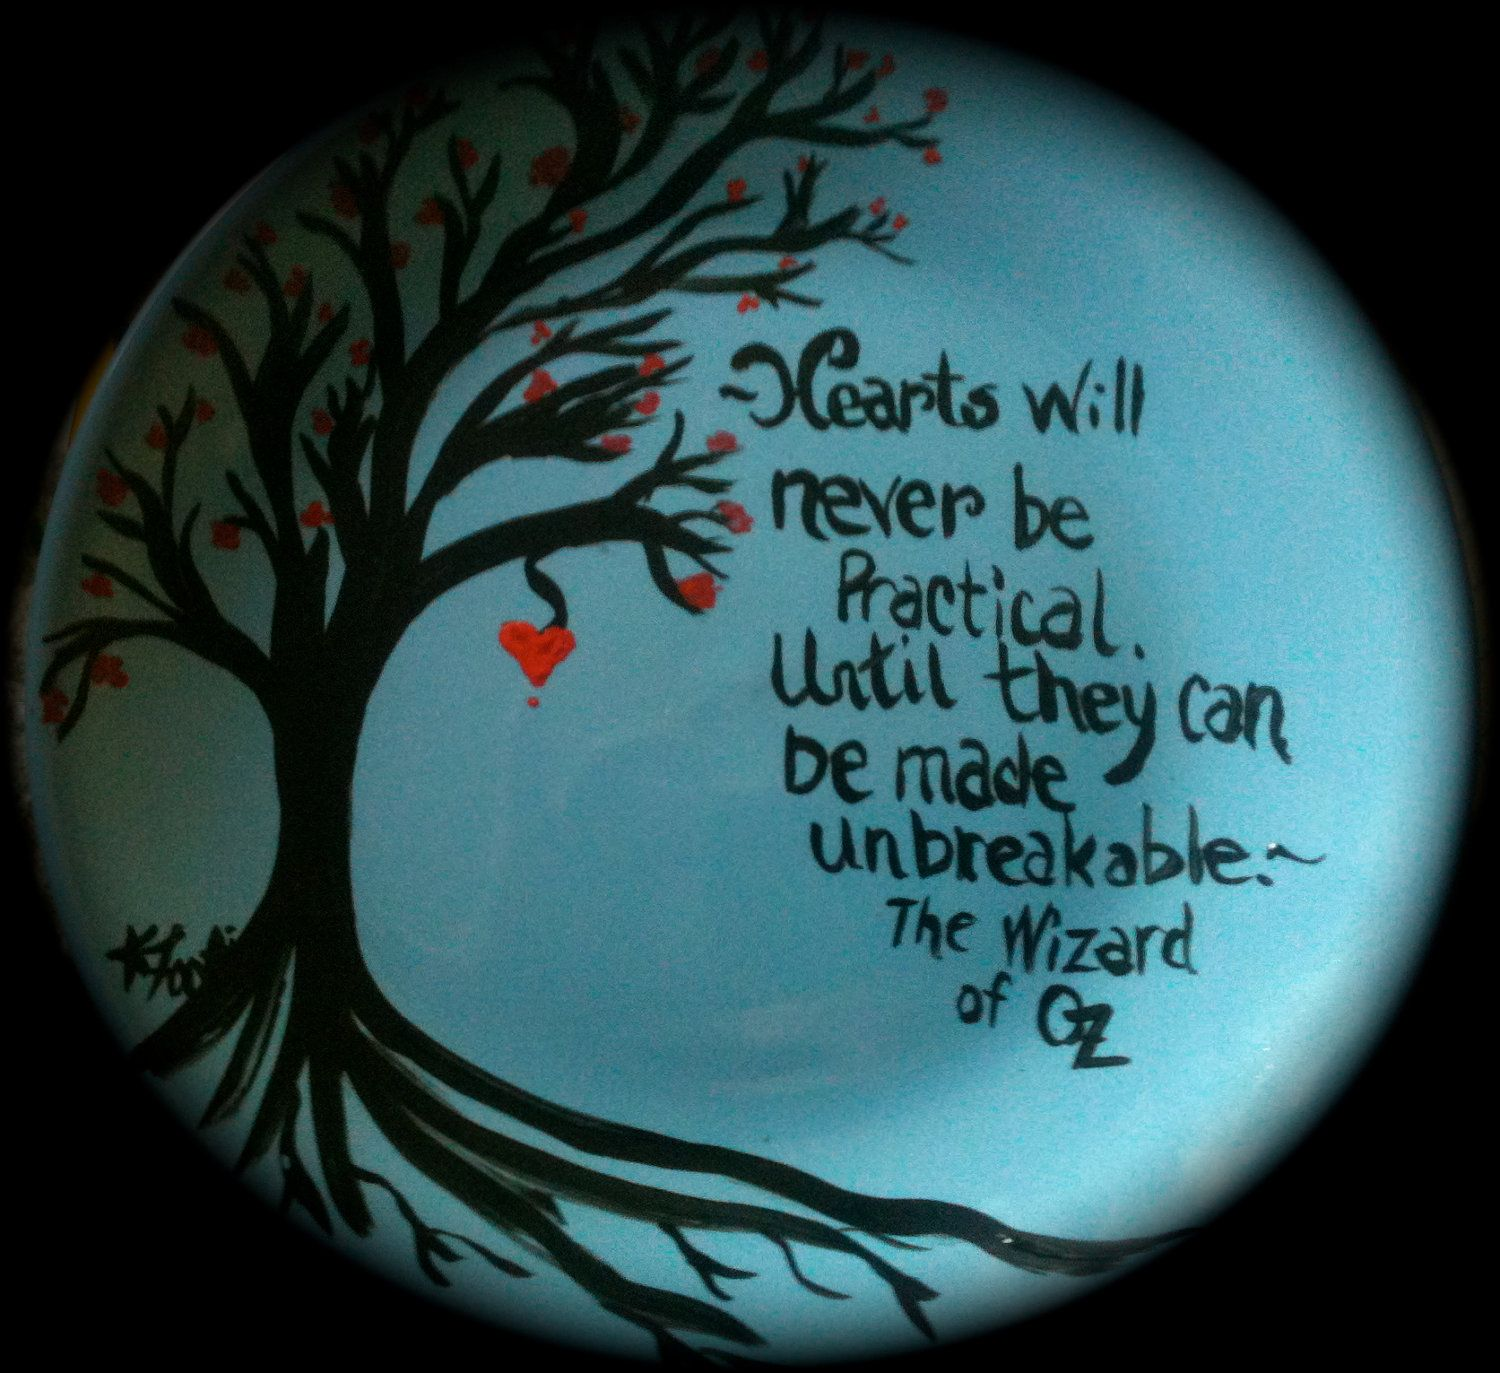 Wizard Of Oz Love Quotes Wizard Of Oz Quote Decorative Plate  Art  Our Burrow Design On